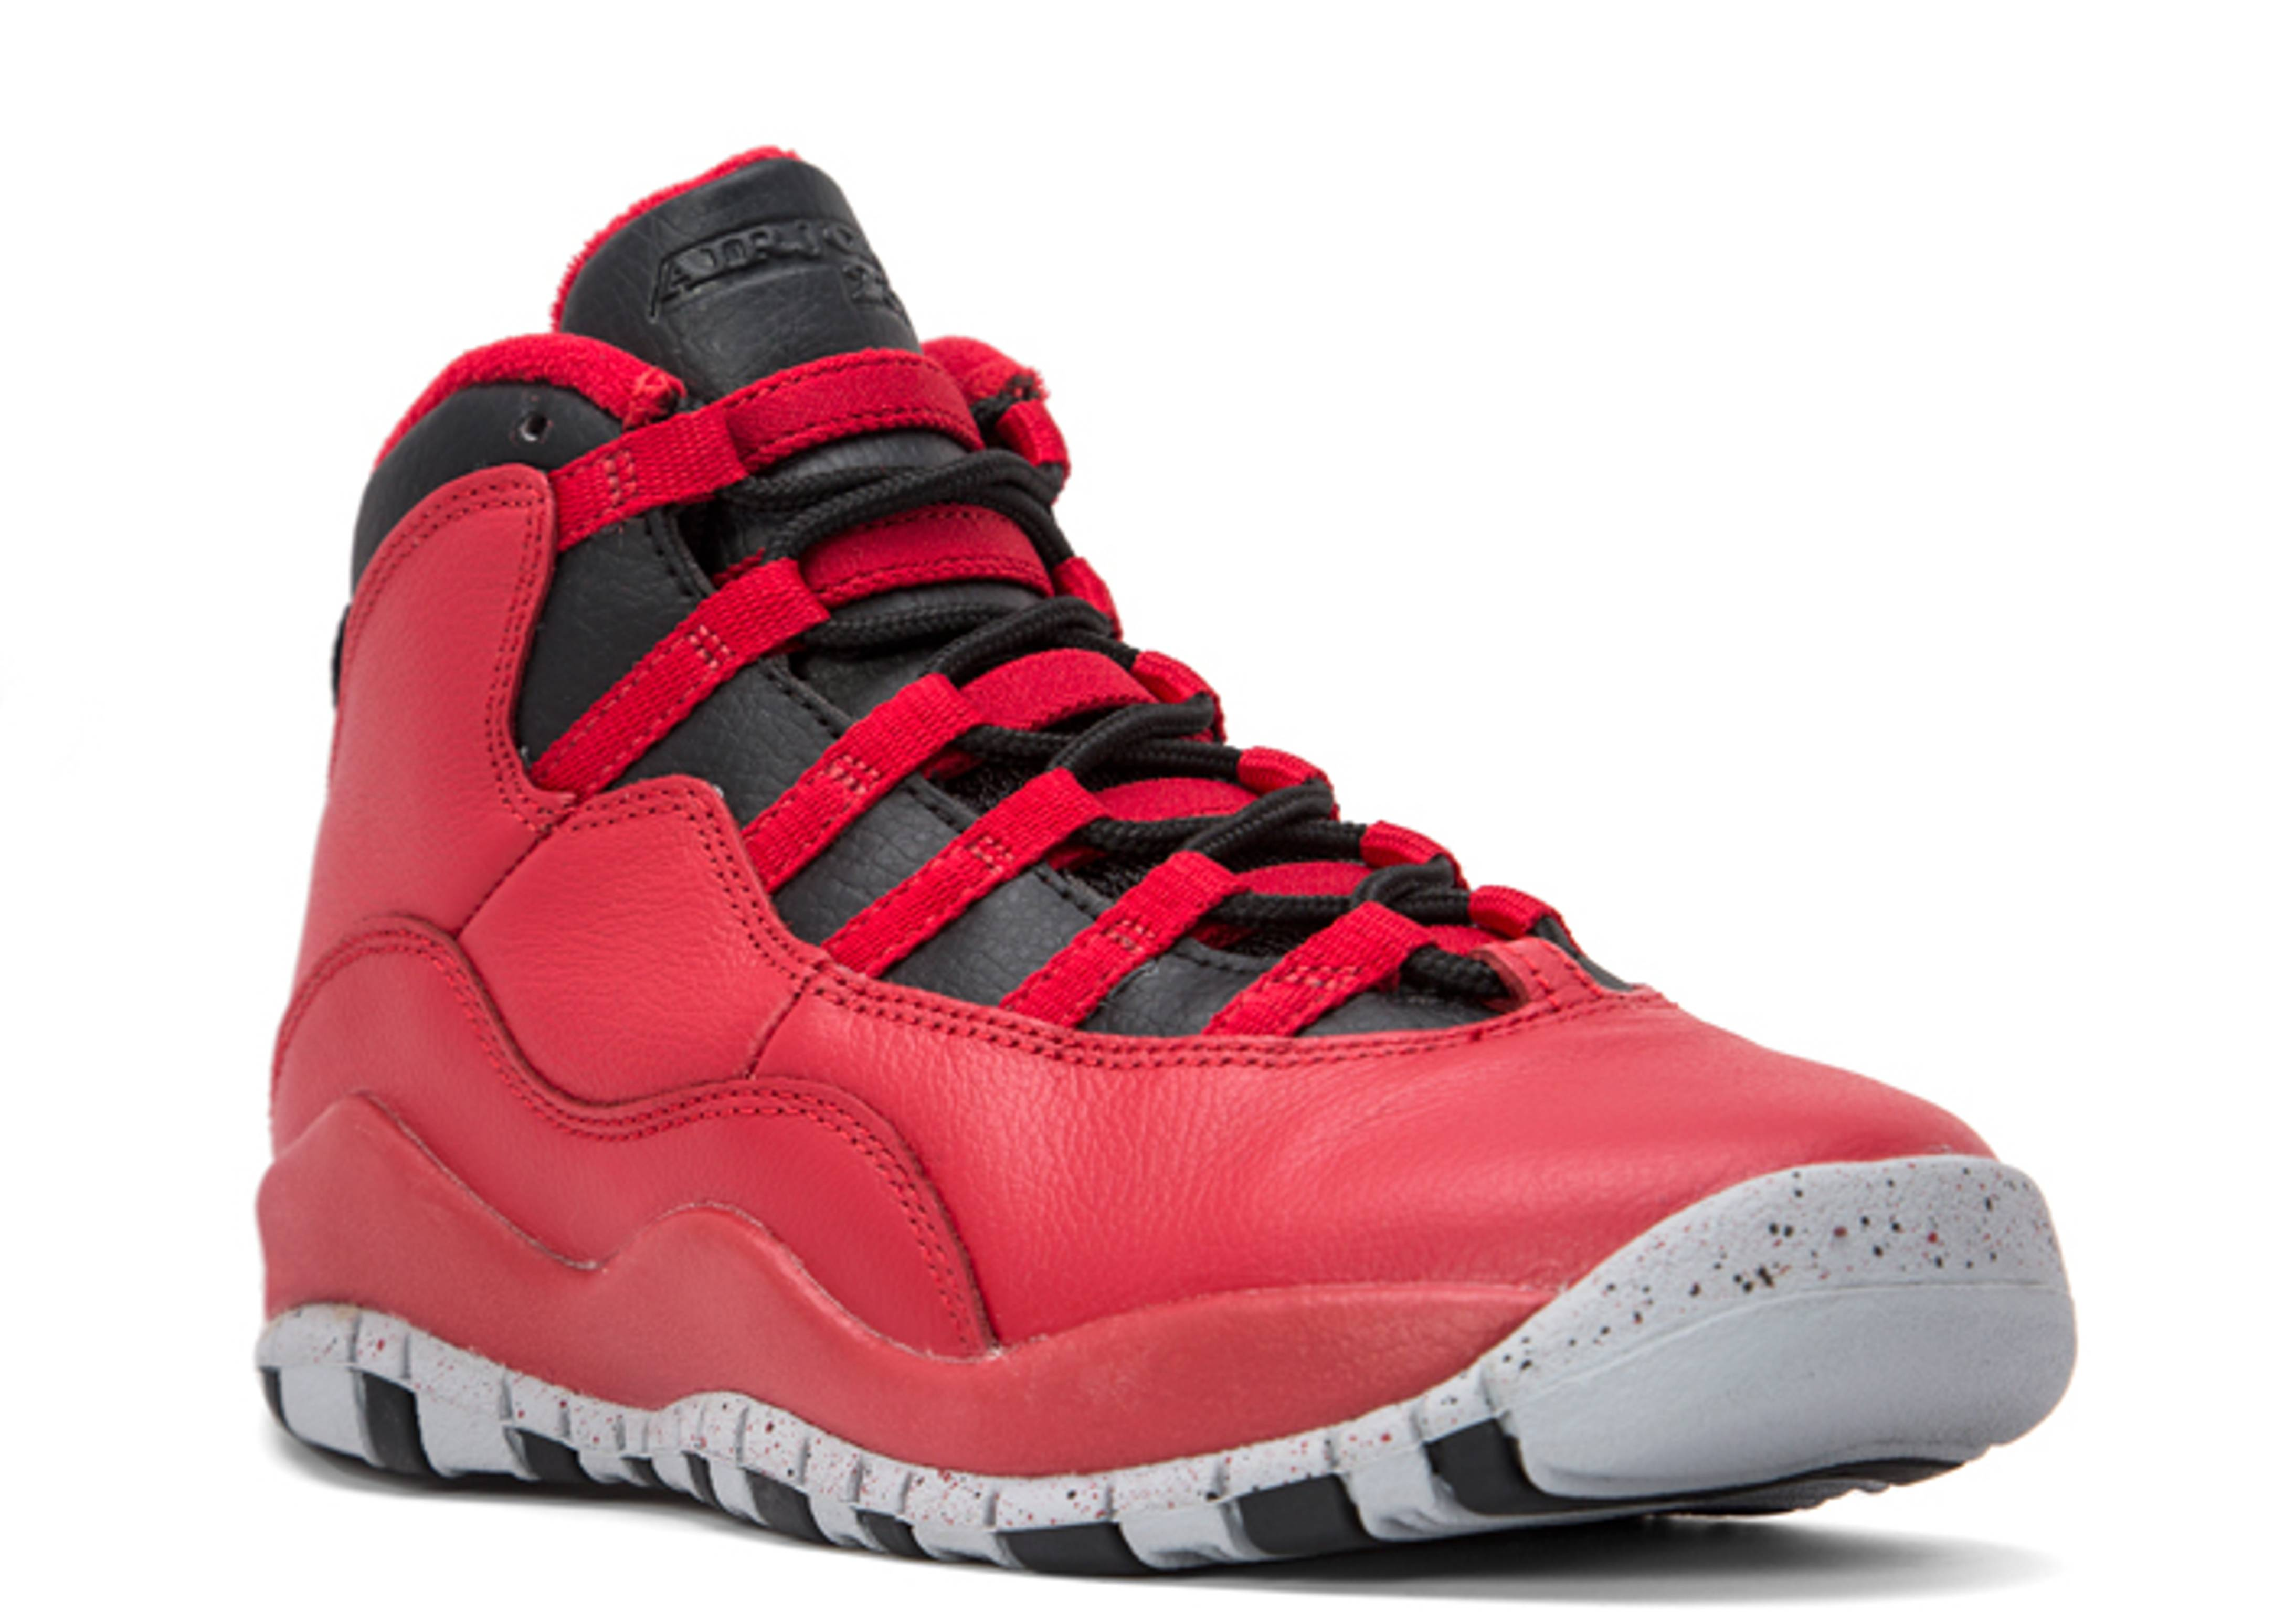 c27337595f2605 air jordan 10 retro 30th bg (gs)